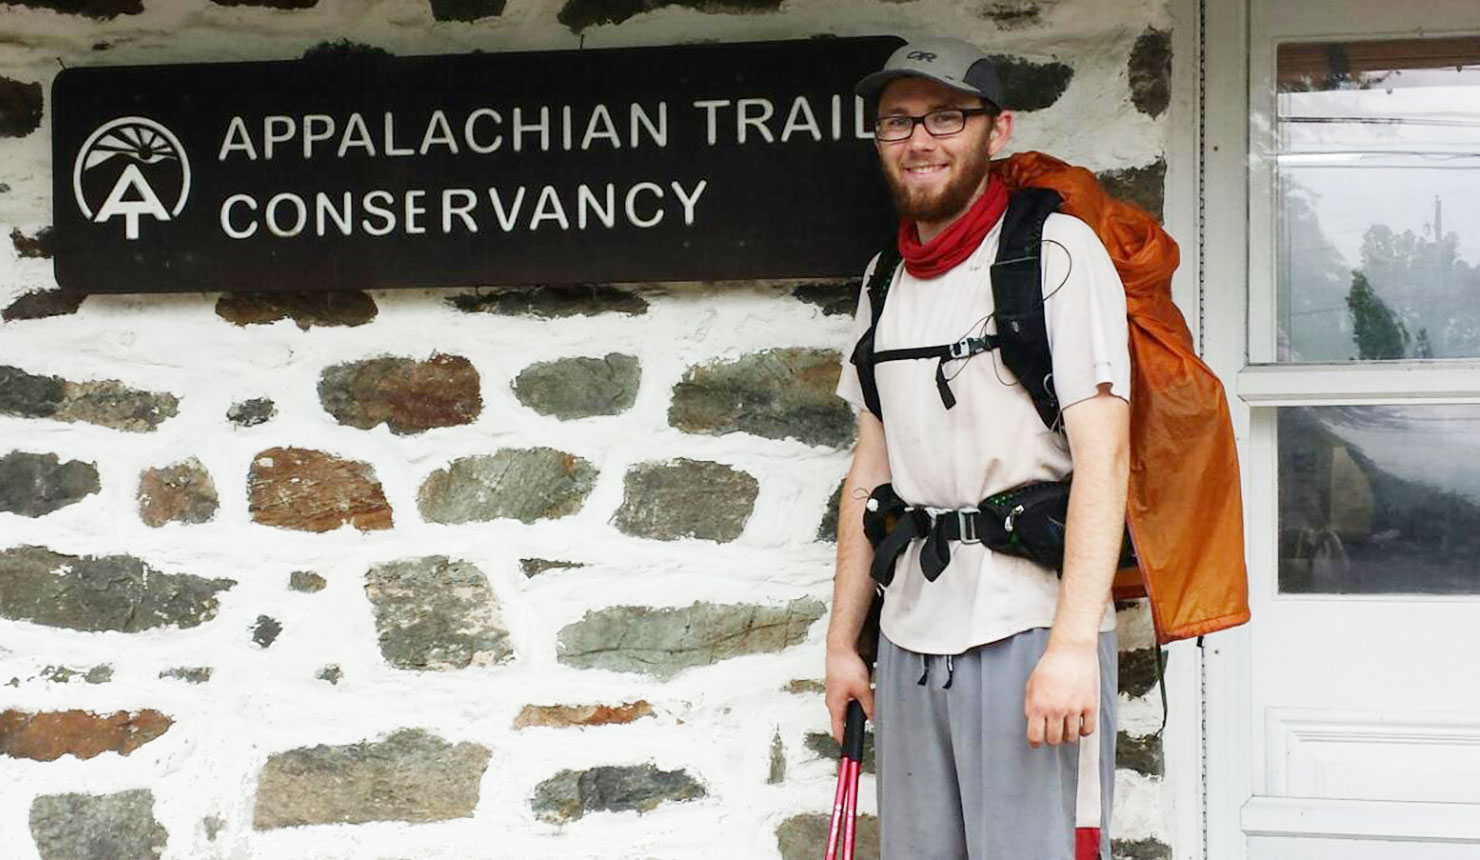 John Porter at Harper's Ferry, West Virginia, at the completion of his hike of the Appalachian Trail in May, 2016.